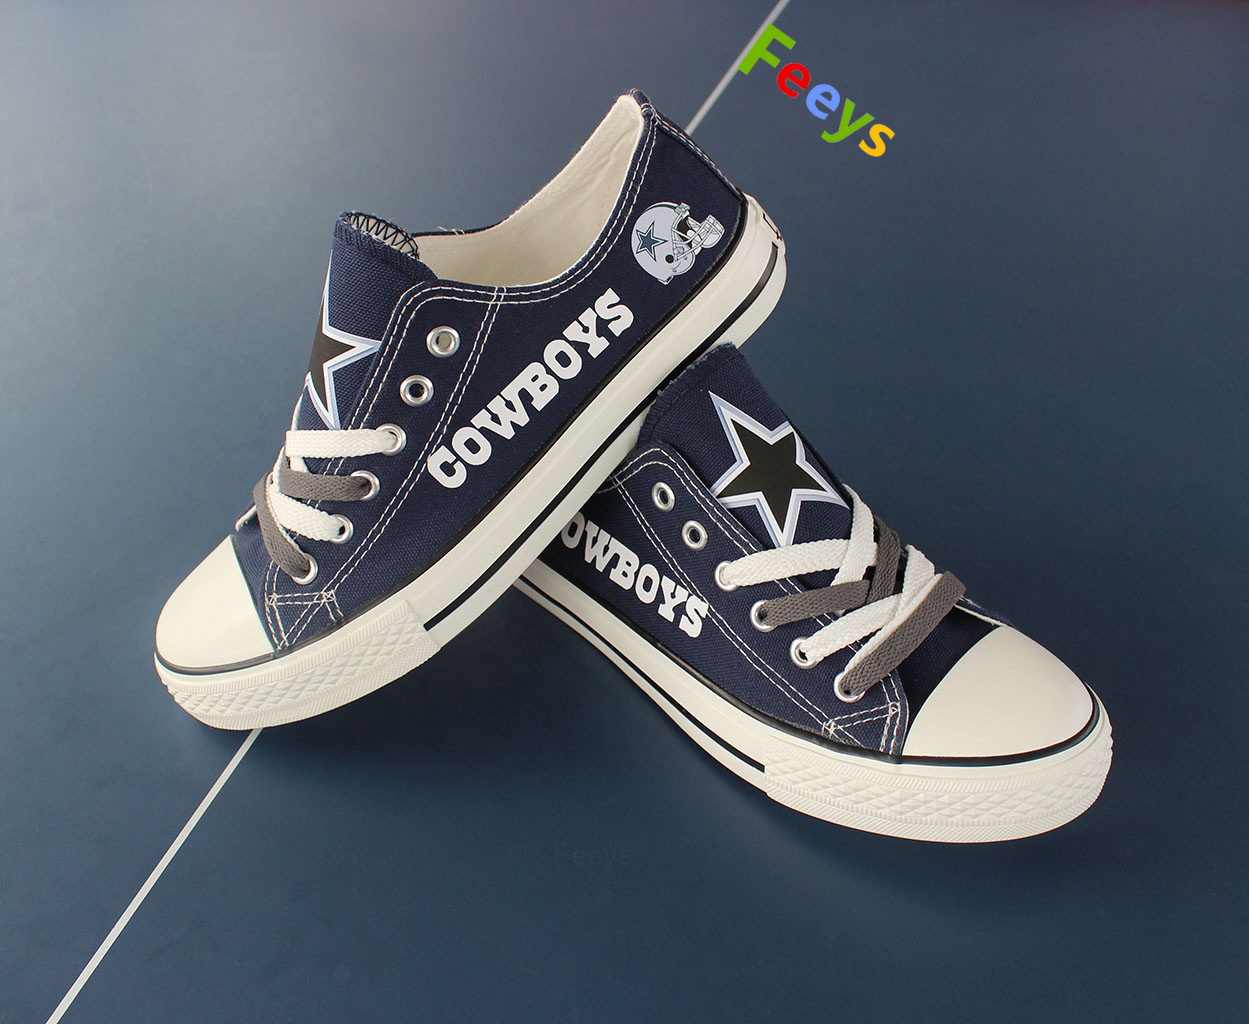 a982111b7158 cowboys shoes womens converse style sneakers dallas fans fashion football  shoes